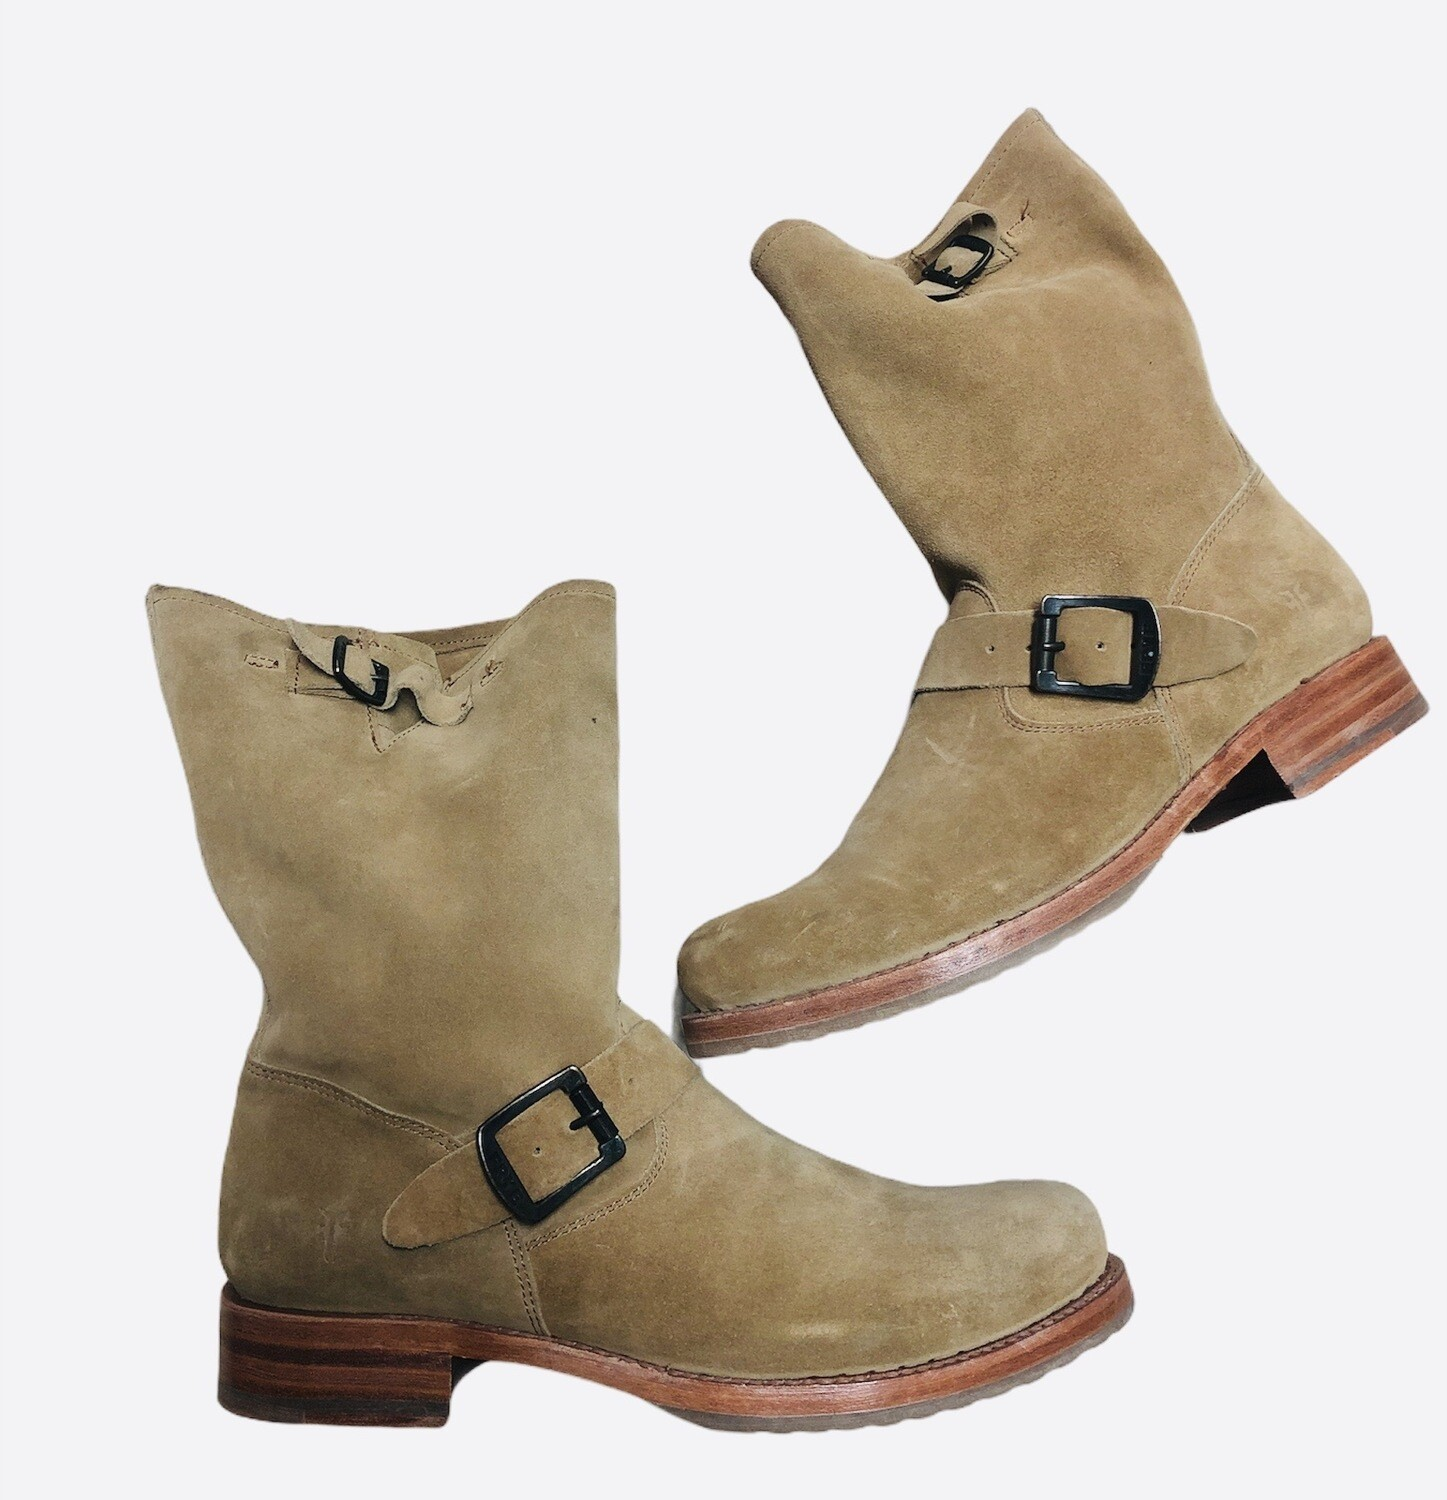 New FRYE Veronica Slouch Suede Boots size 9 1/2 B $298